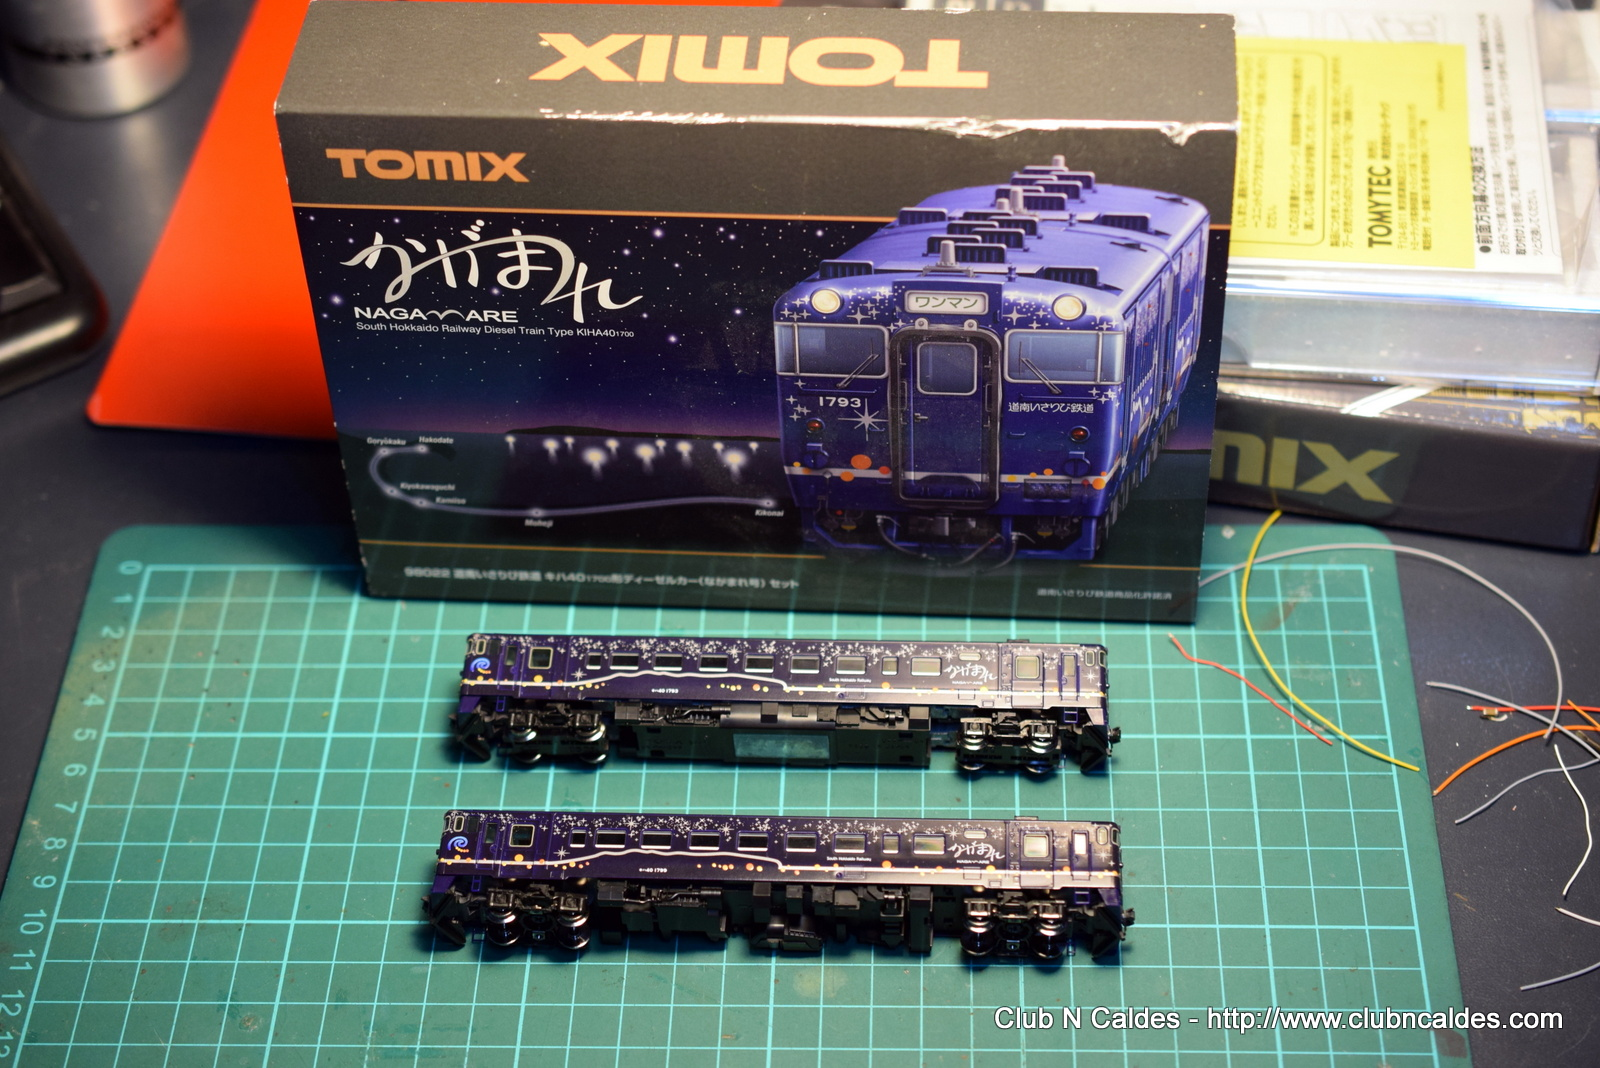 Club N Caldes Tomix Kiha40 1700 Nagamare Wiring Dcc As Well Model Train Layouts On Models Are Perfectly Built But Converting Them To Is Always Tricky And Everything Must Be Disassembled My Strategy Will Solder Single Wires